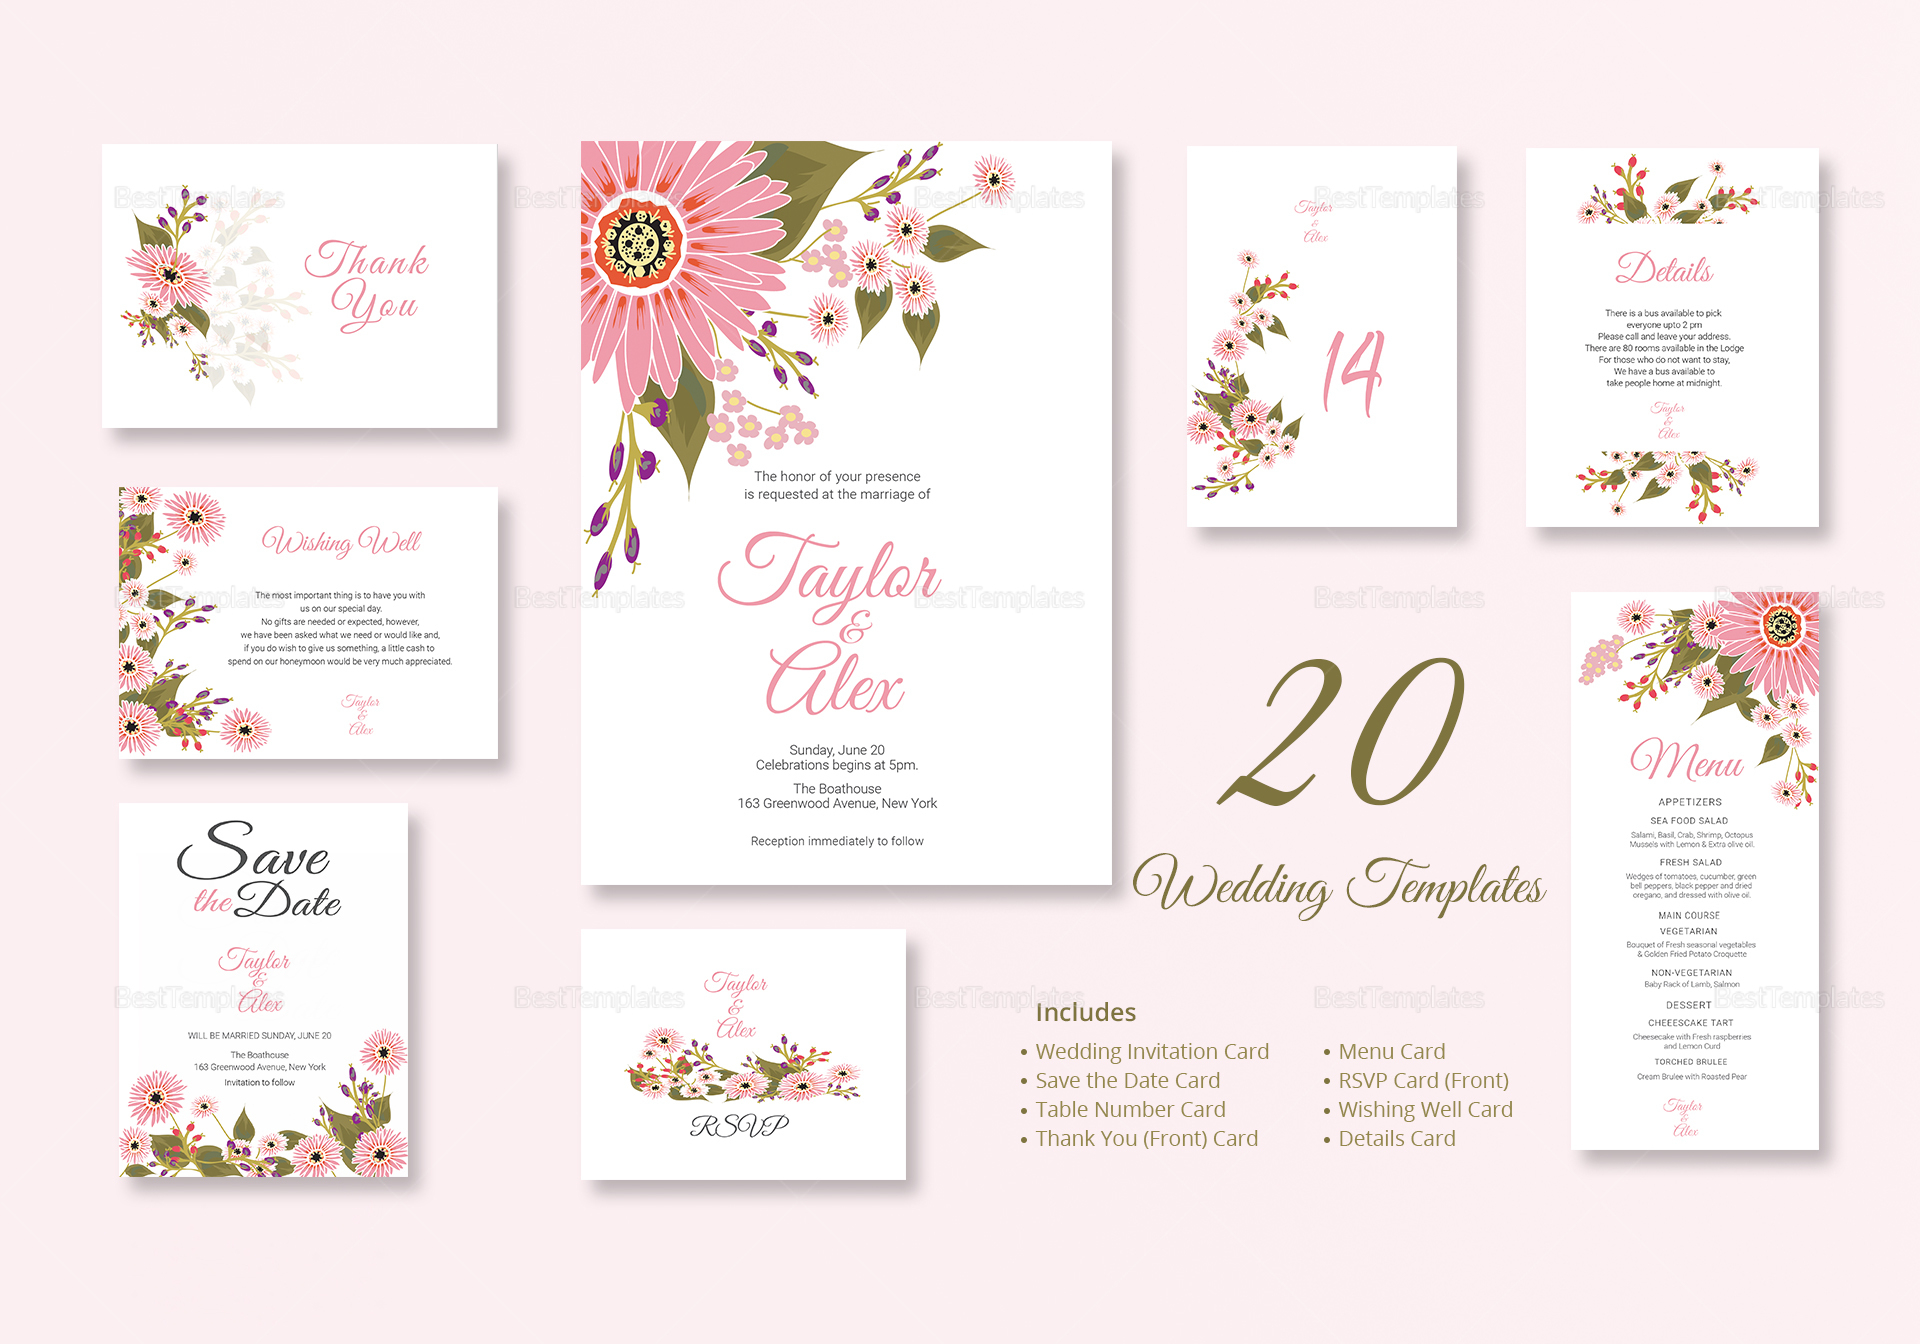 Floral Wedding Invitation Suite Design Template